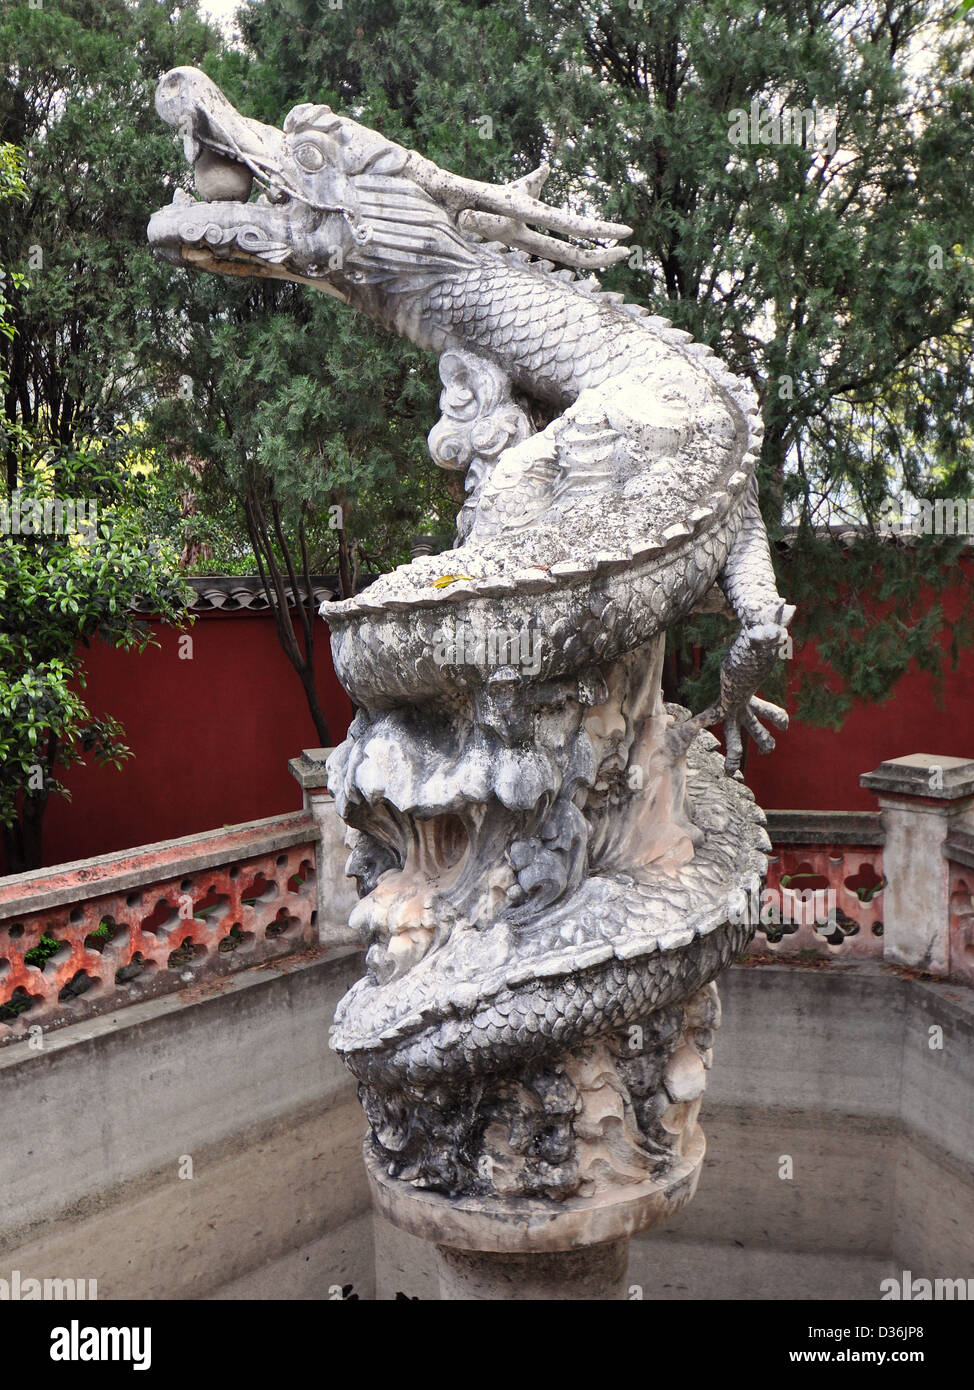 Ancient Marble Sculpture of Mythical White Dragon - White Emperor City, Baidicheng, China Stock Photo